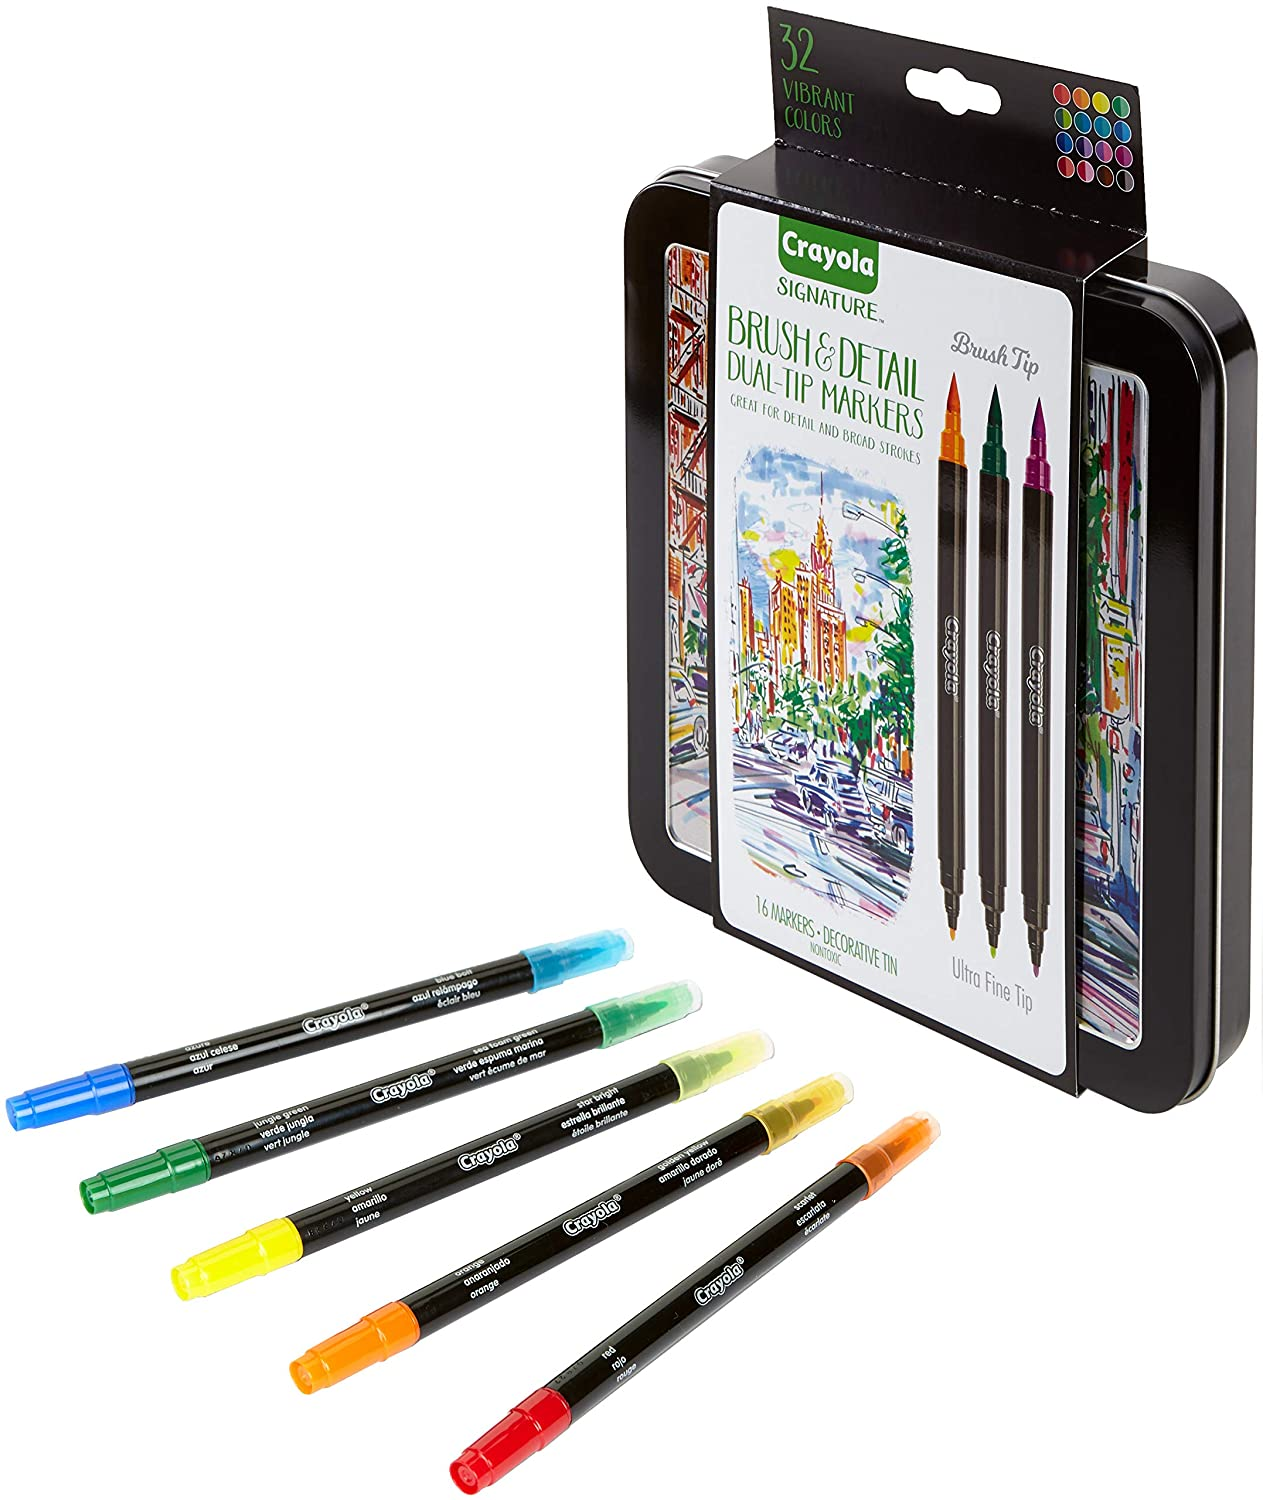 Crayola Brush Markers ONLY $6.